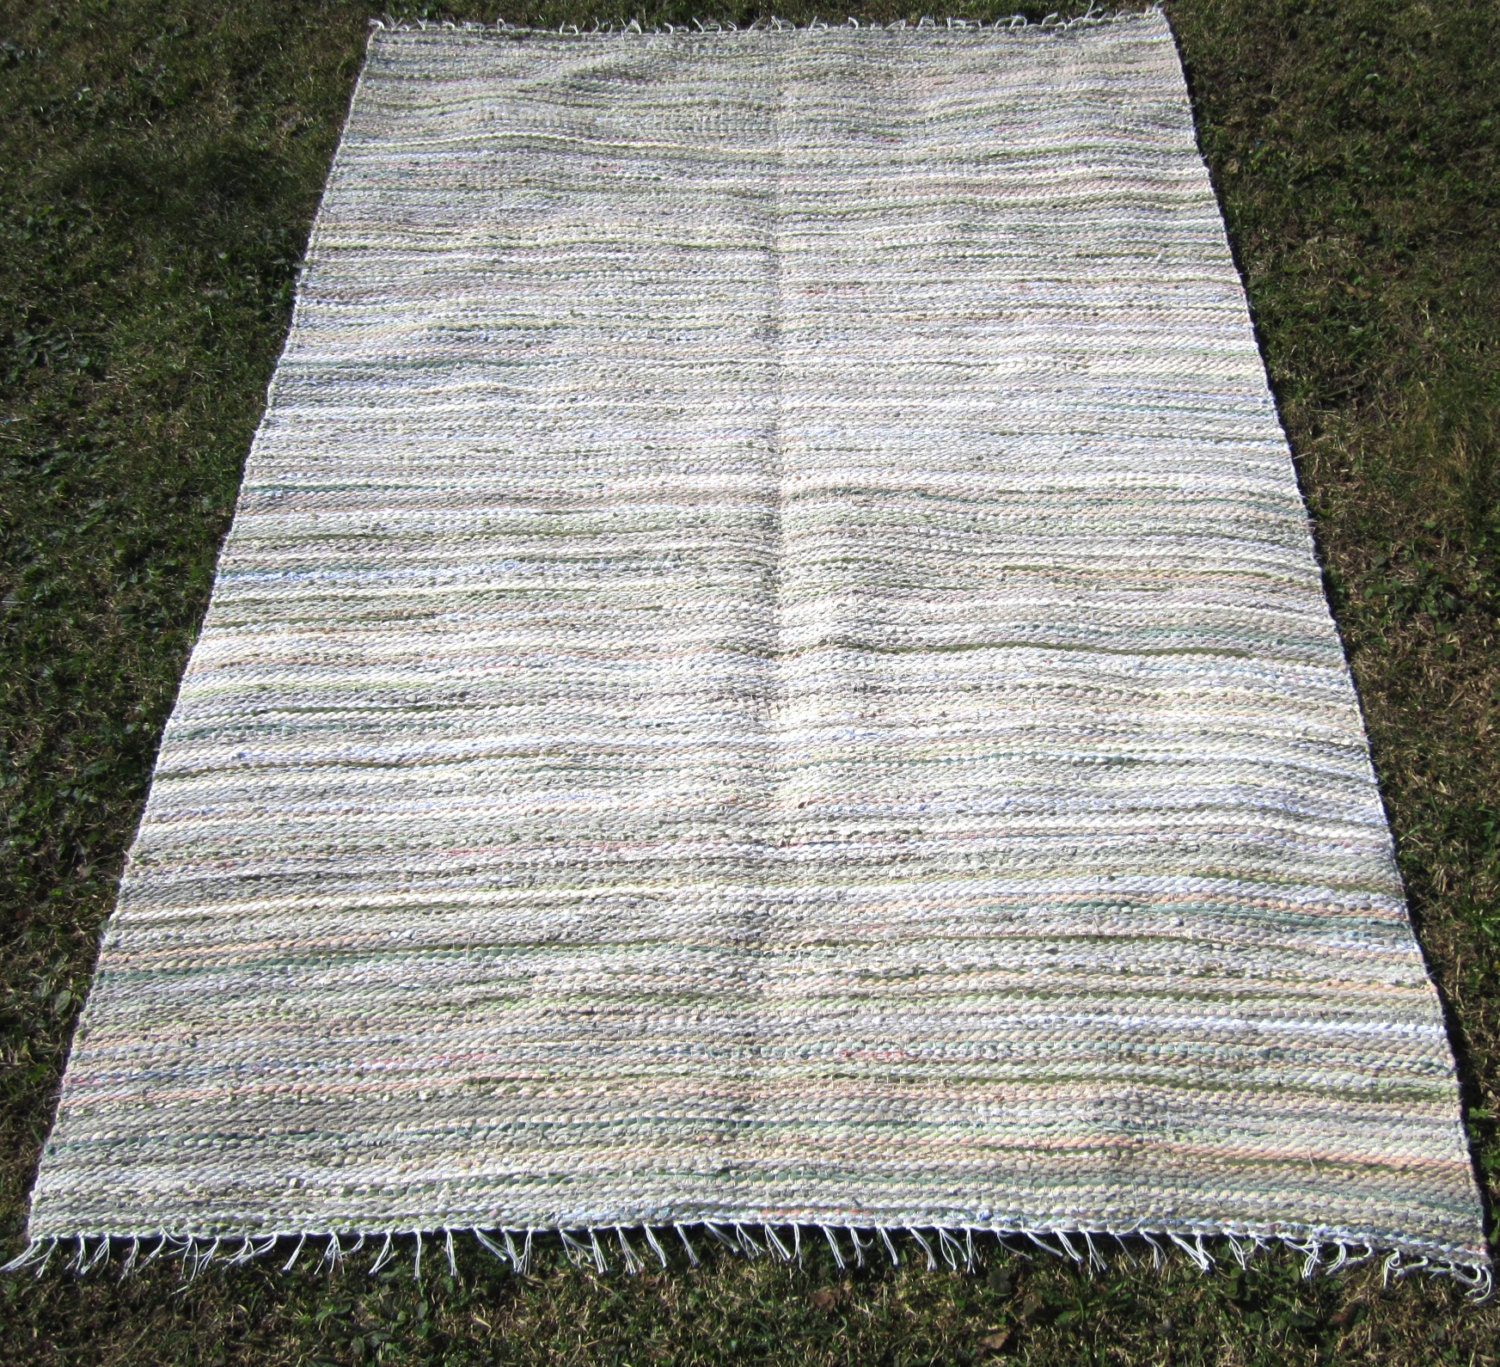 Large Handwoven Vintage Look Rag Rug 7' X 6' Custom